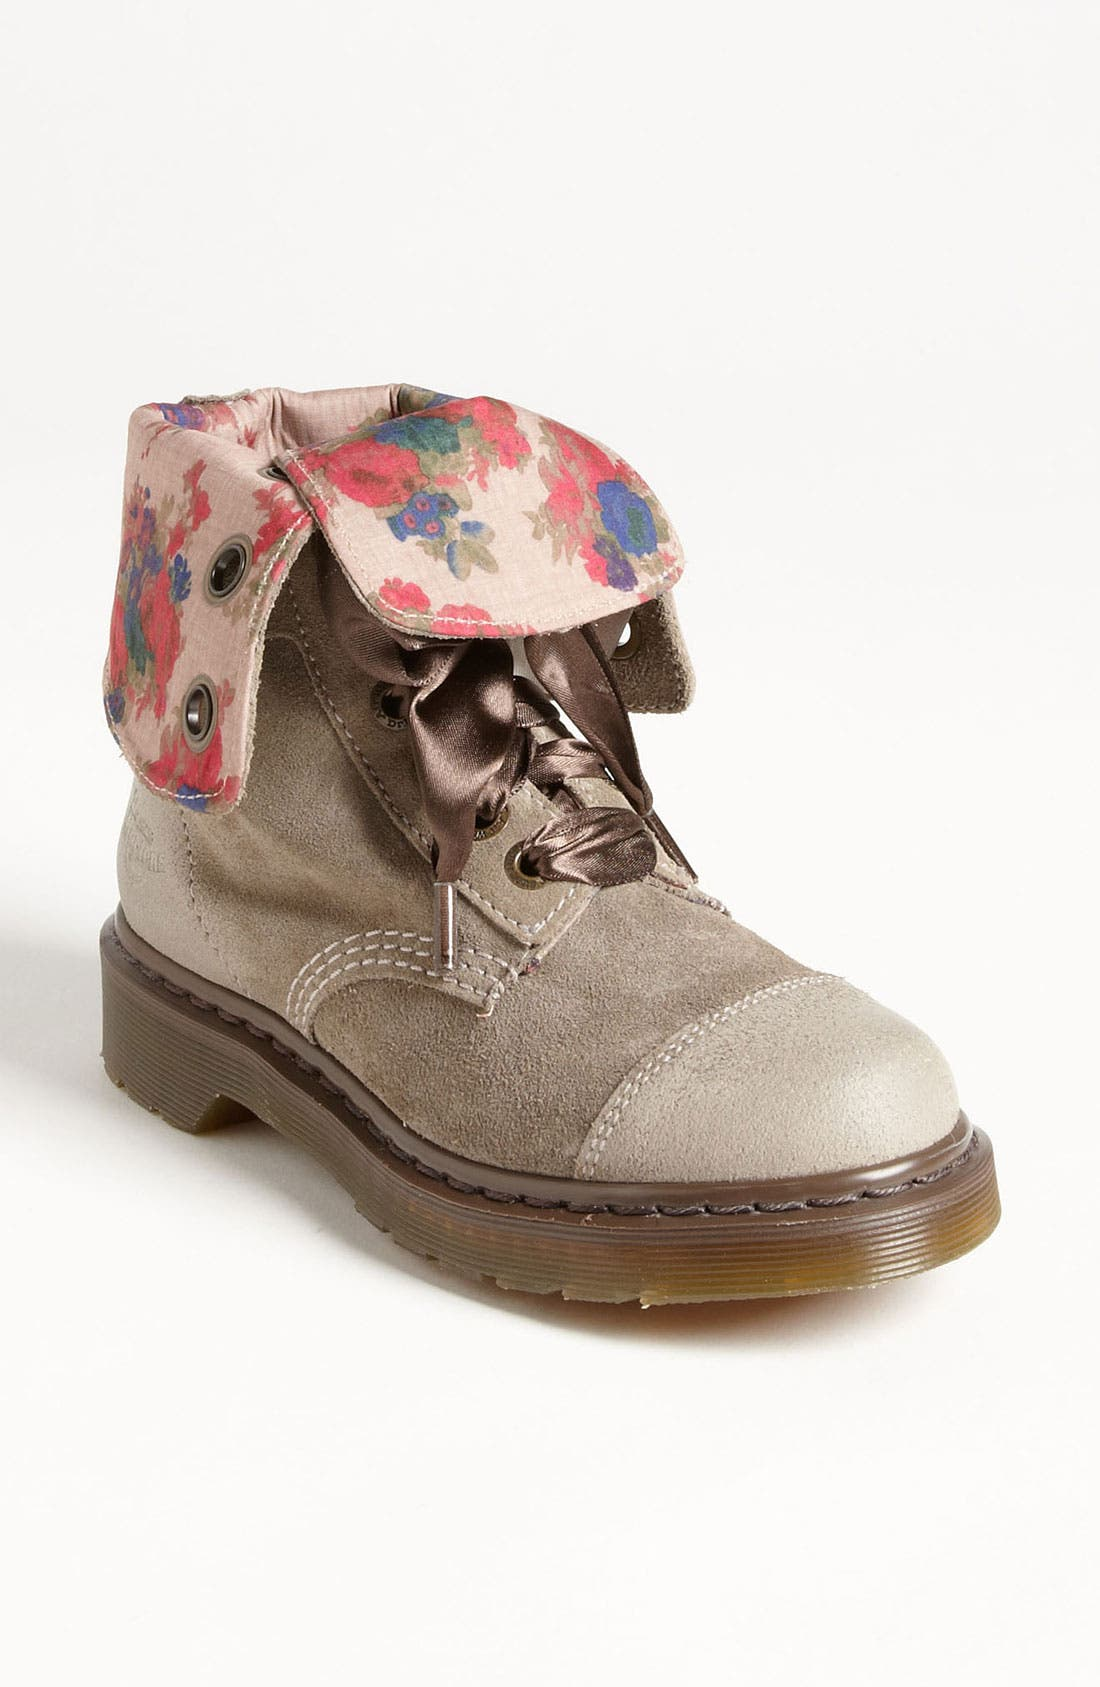 Alternate Image 1 Selected - Dr. Martens 'Aimee' Boot